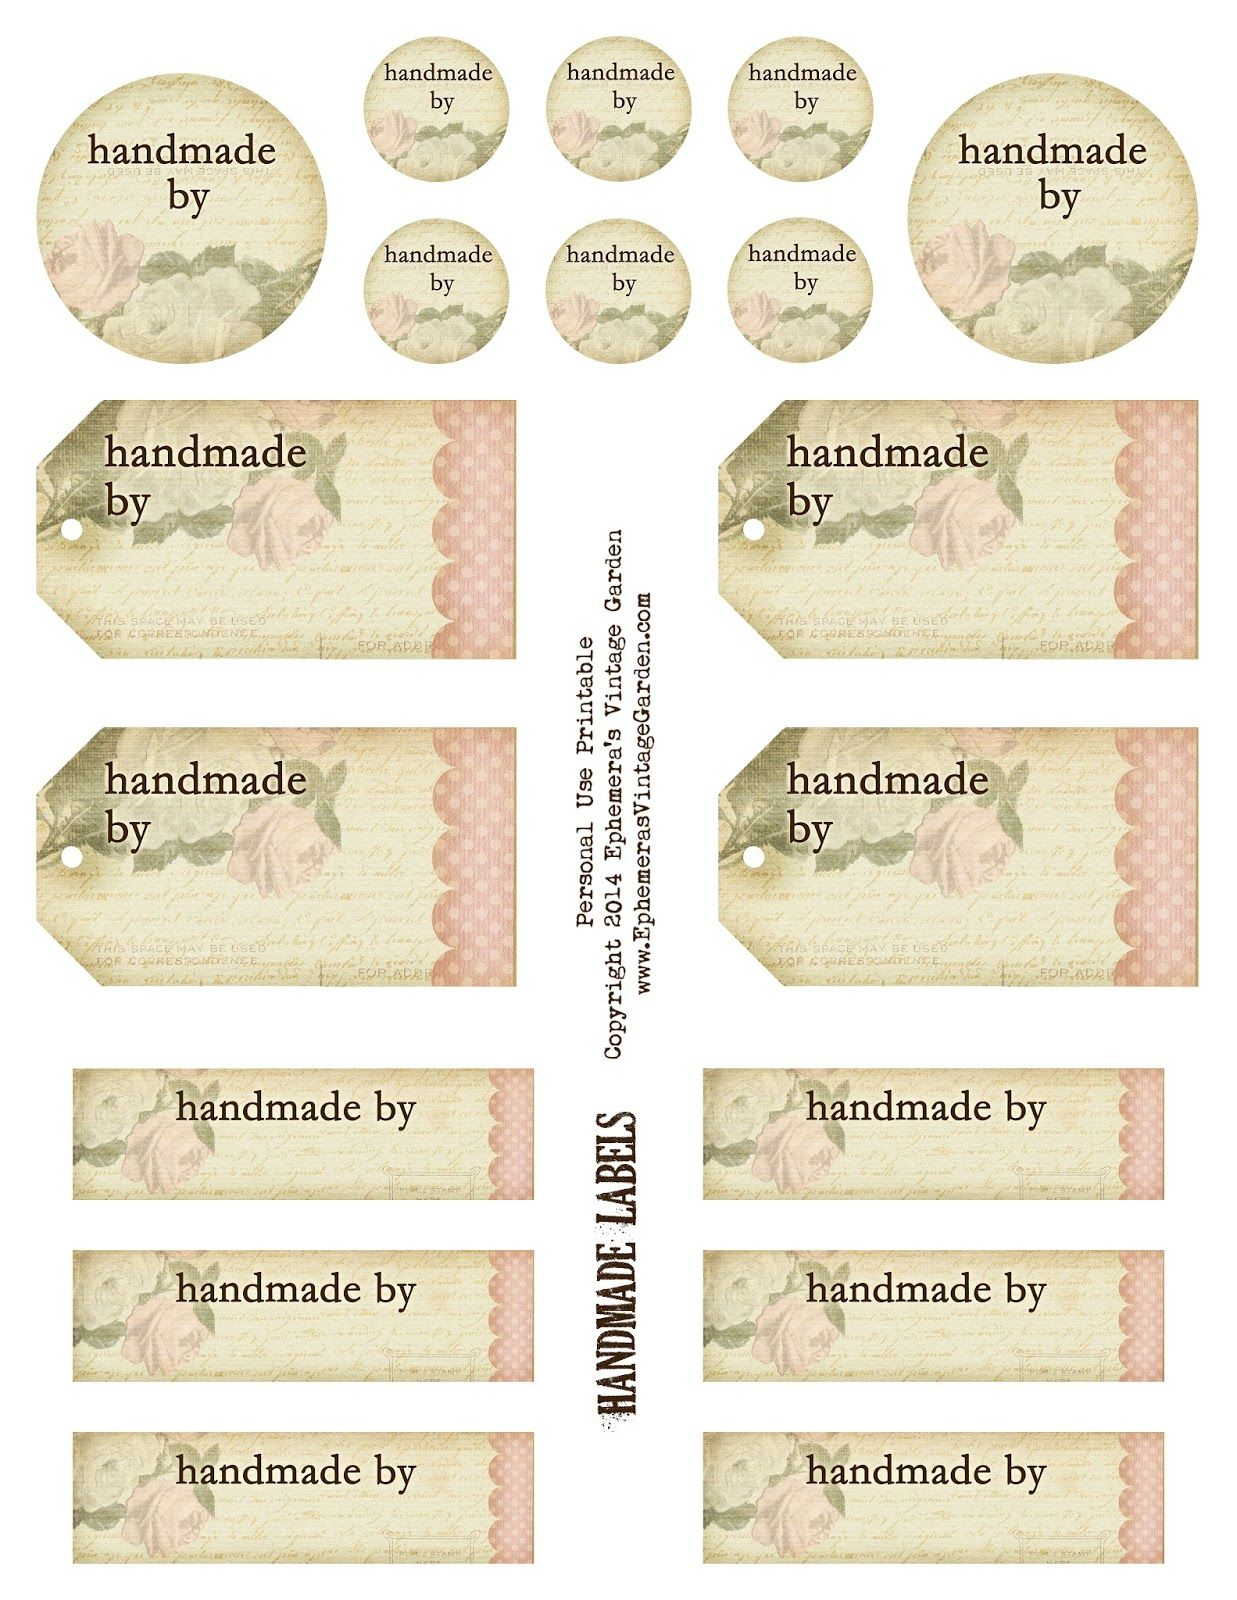 free printable - 'handmade by' tags and labels (ephemera's vintage